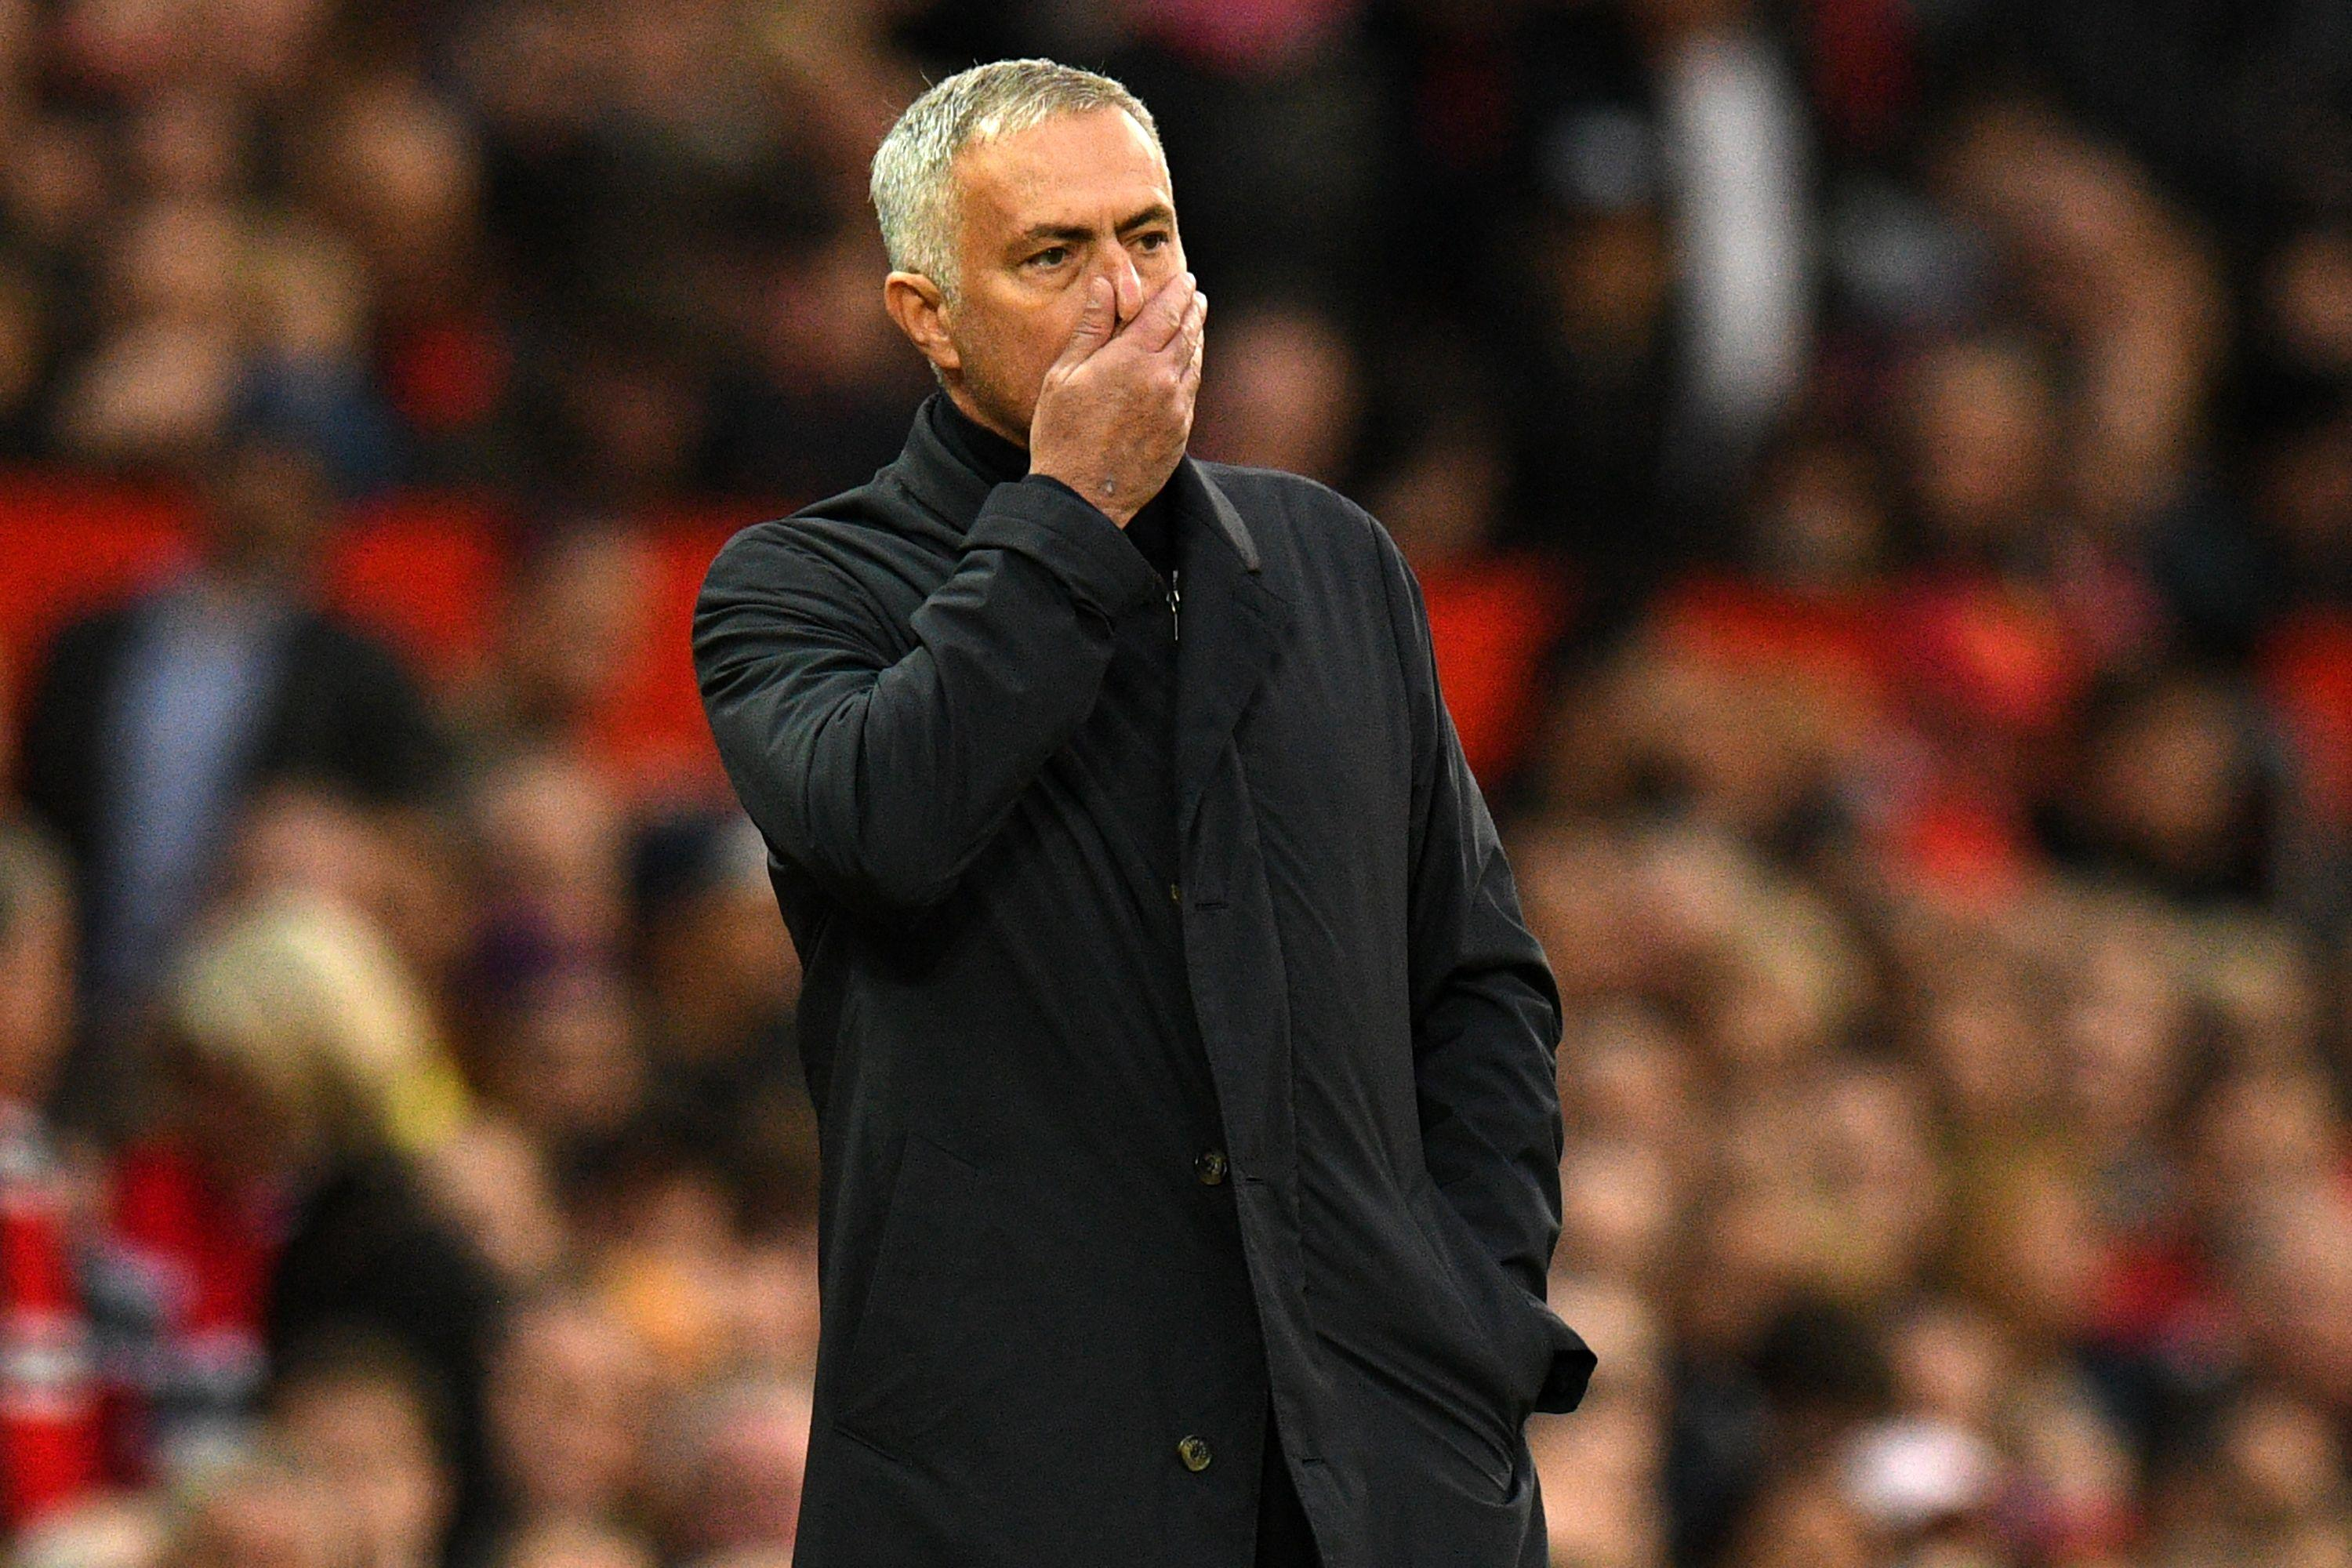 Jose Mourinho would certainly welcome some more money to spend in the transfer market